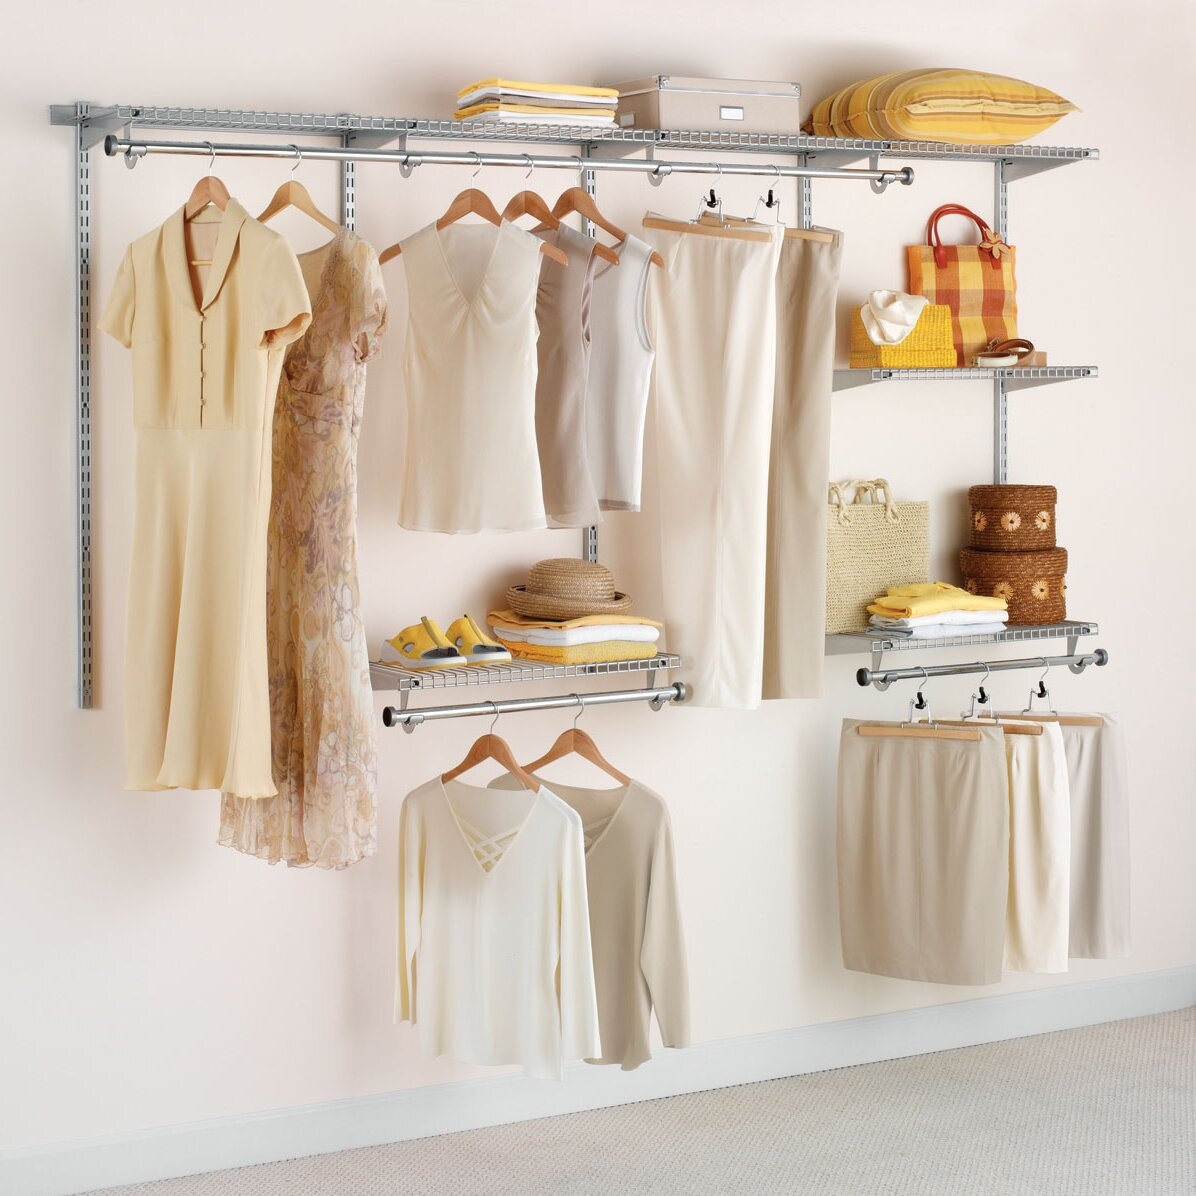 Rubbermaid Closet Design In Endearing Home Decorating Ideas 60 With Additional